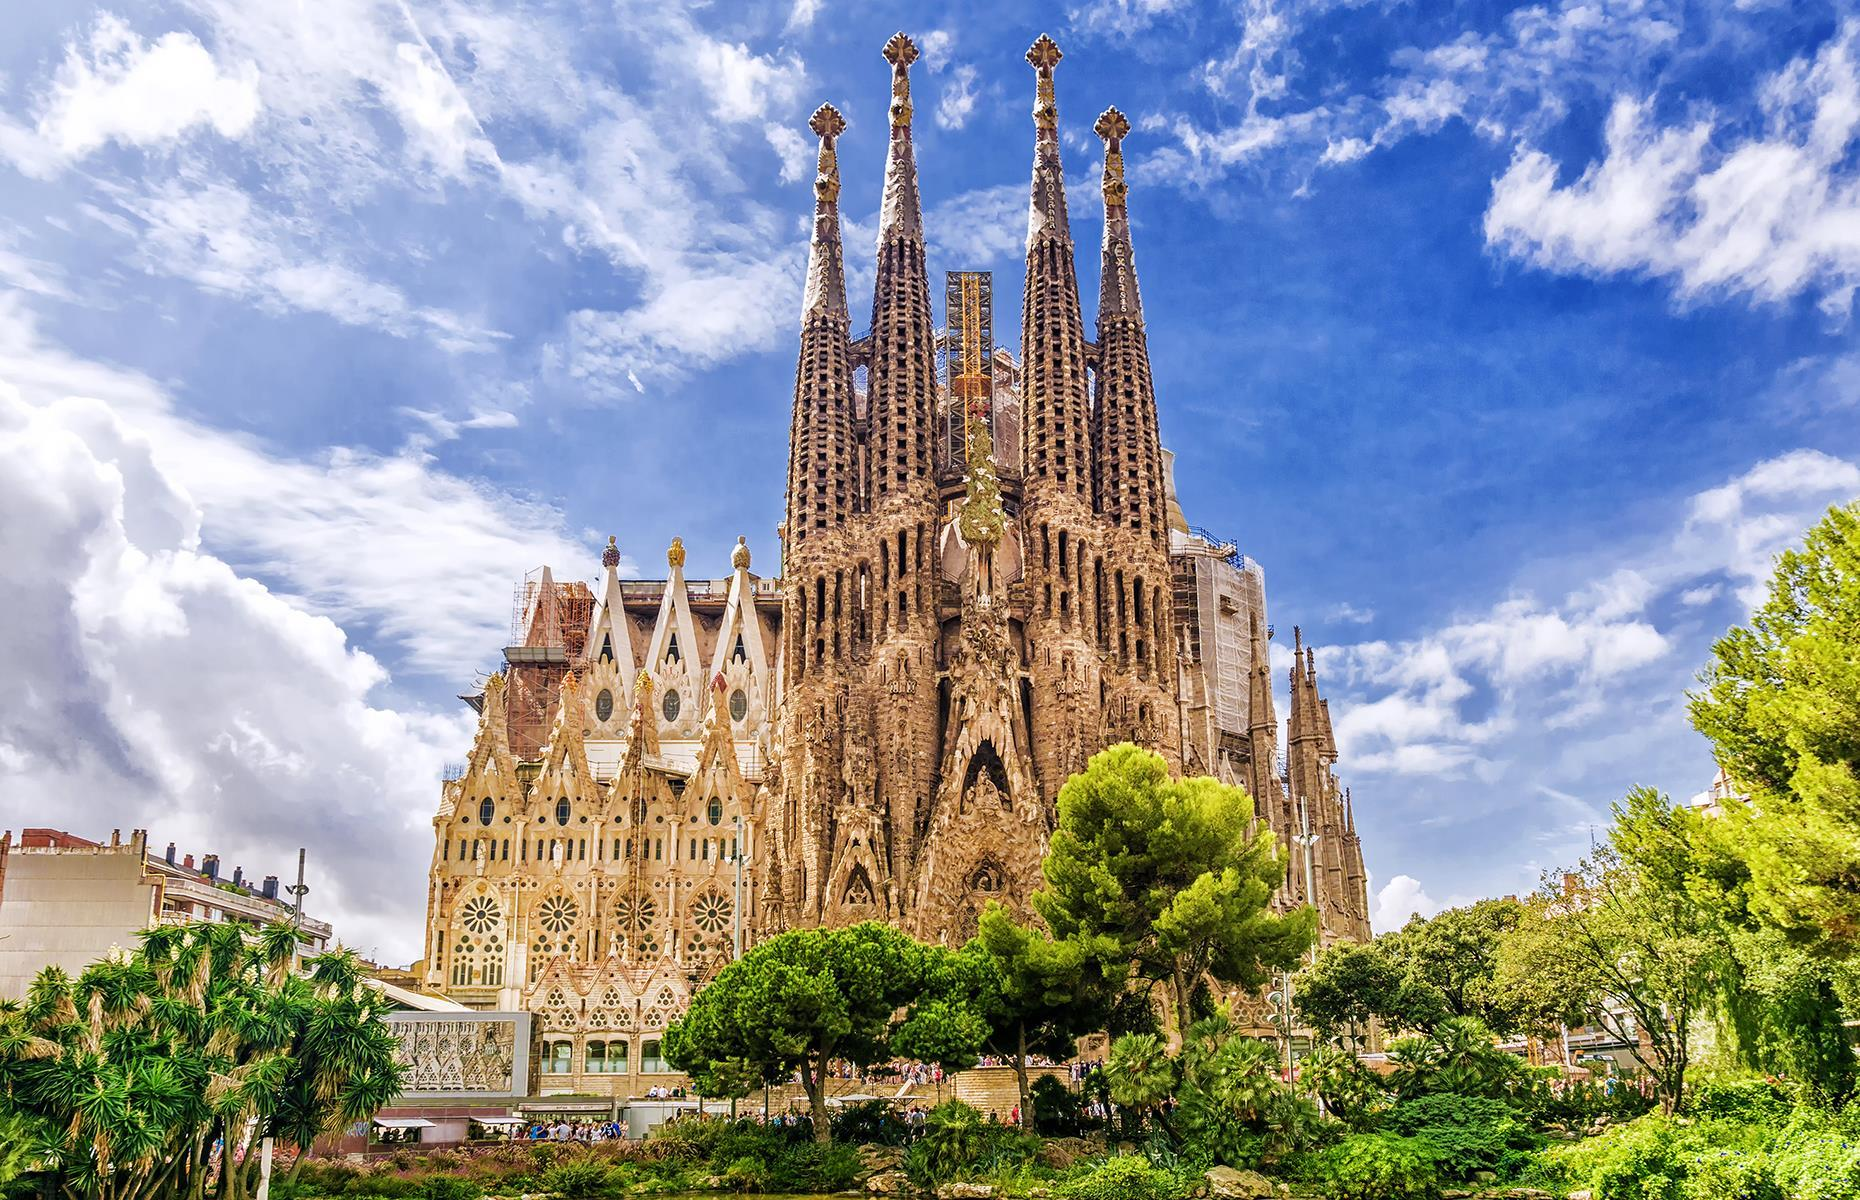 Slide 53 of 53: A dominant feature of Barcelona's skyline, the Sagrada Família has been a work in progress since 1882, when construction started. Designed by Antoni Gaudí, the basilica is expected to be finished by 2026 – the centenary of Gaudí's death. Take a look at the world's most beautiful cathedrals.